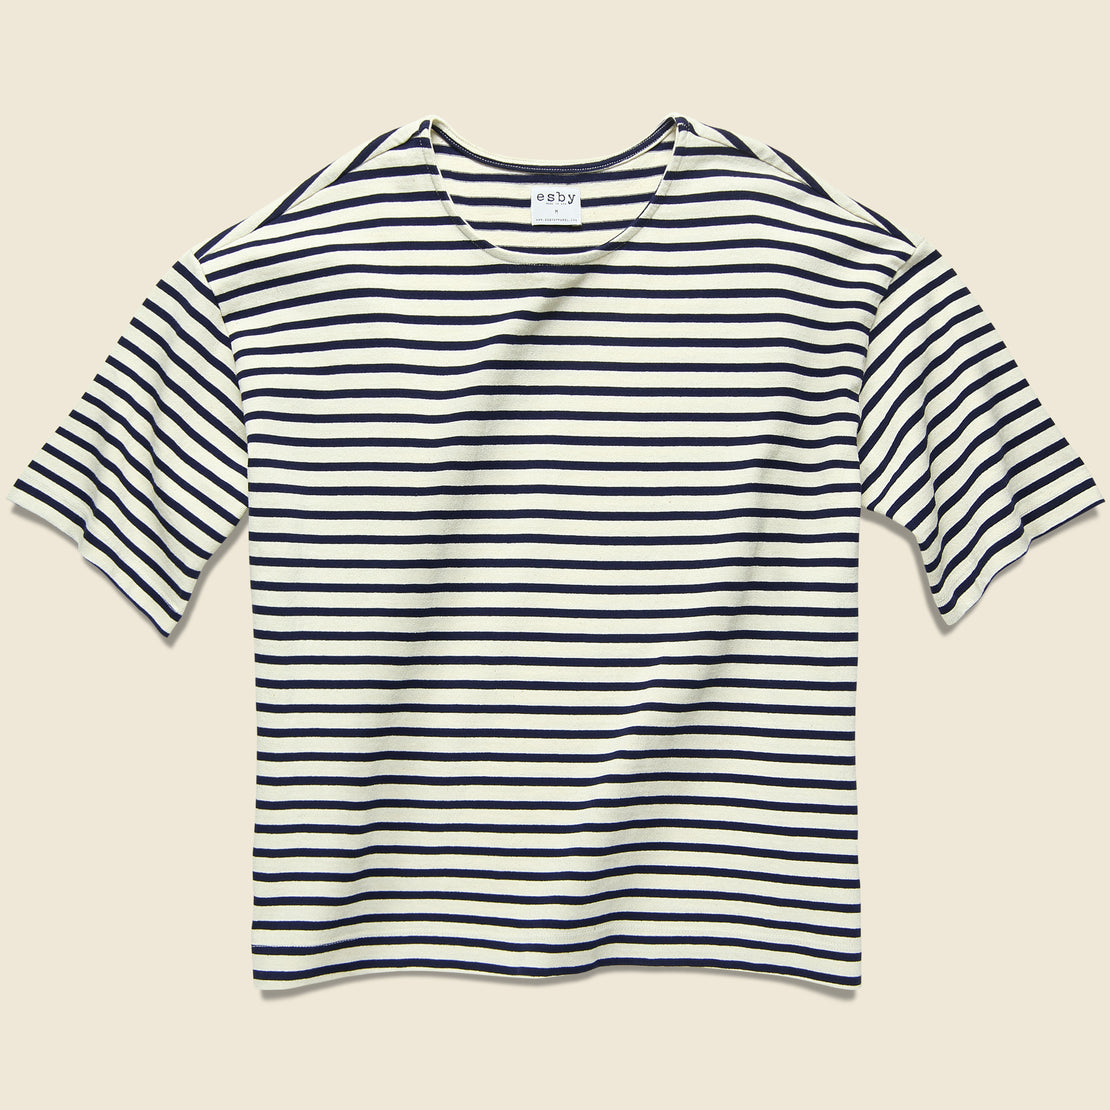 Esby Meredith Knit Top - Natural/Midnight Stripe